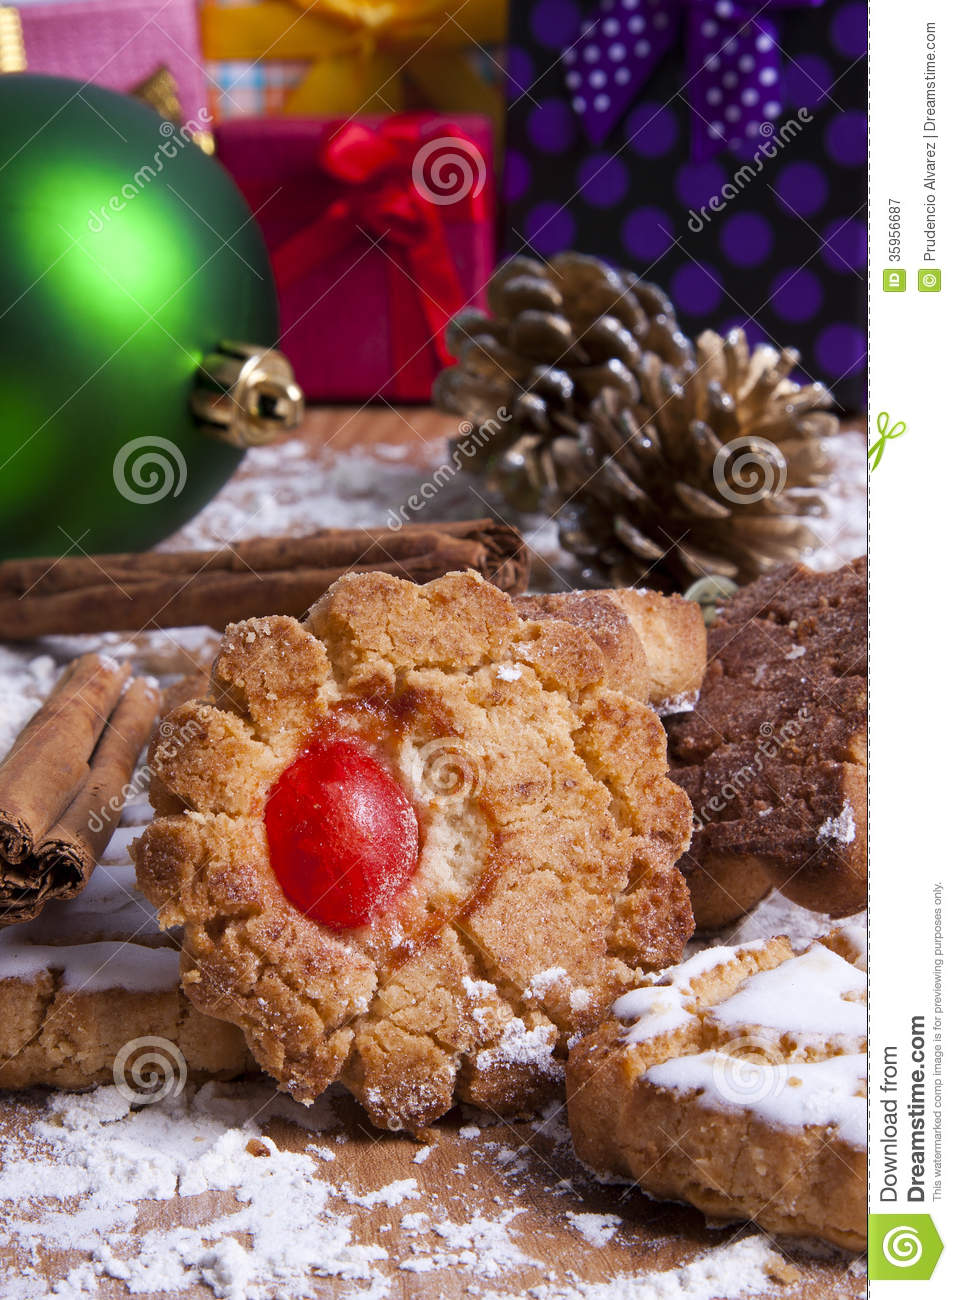 Christmas dessert royalty free stock photography image for List of traditional christmas desserts